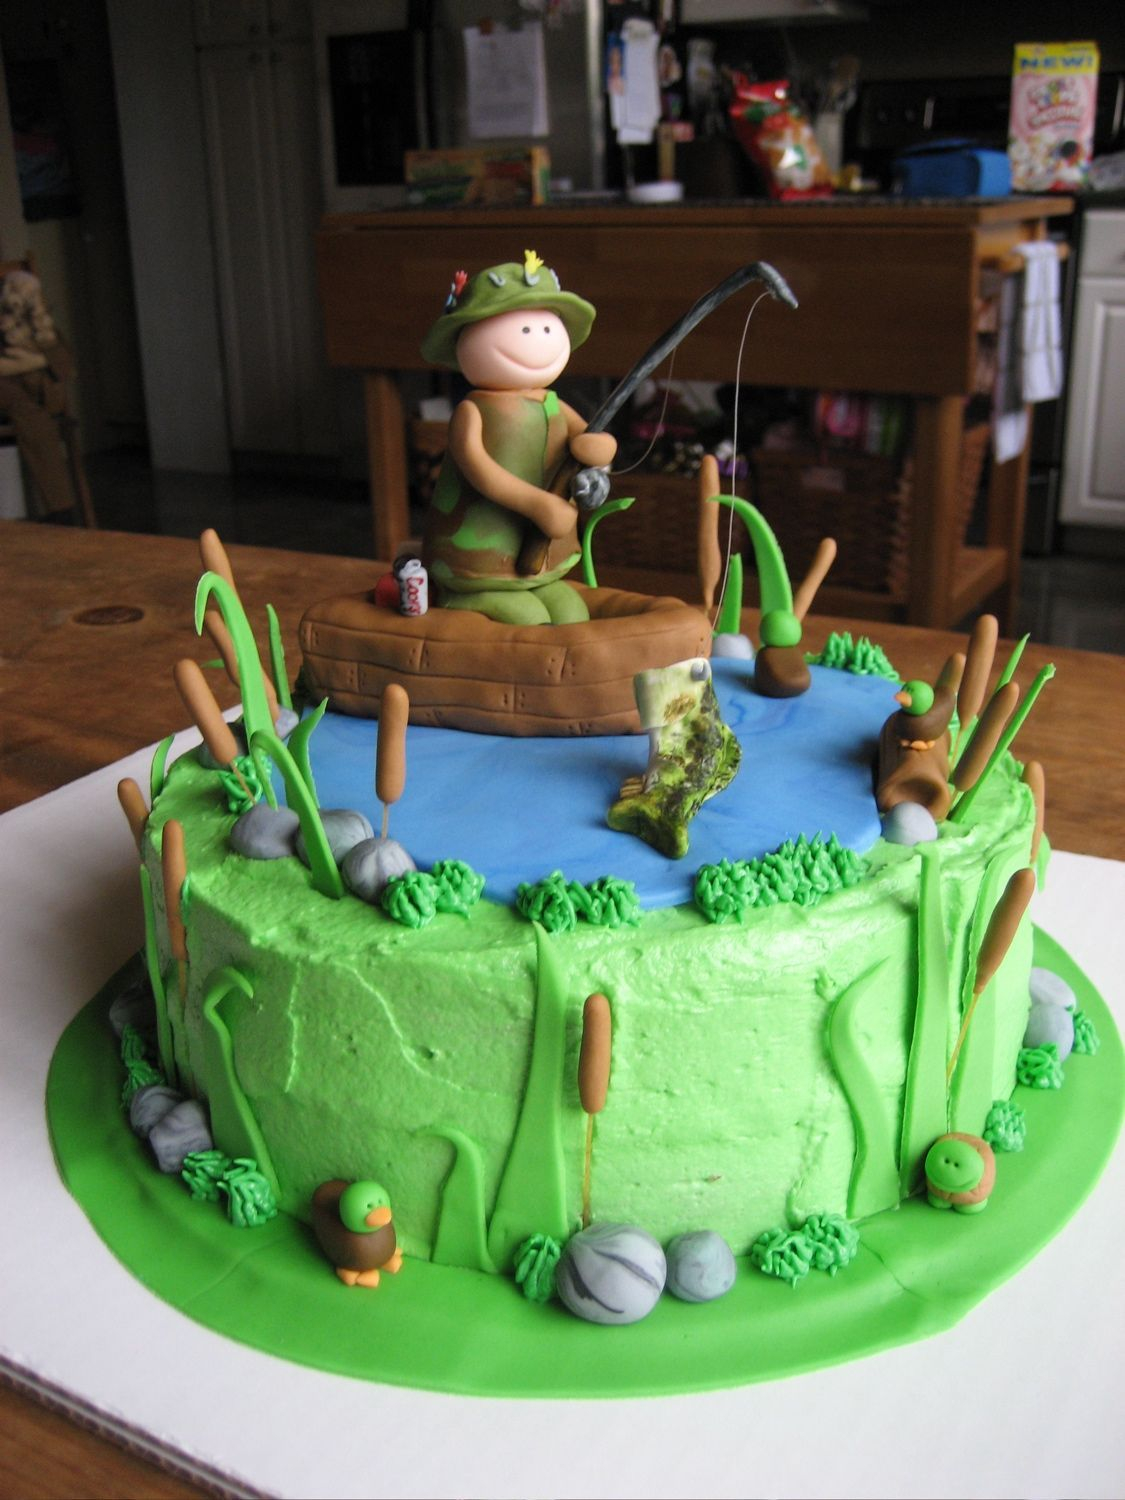 Fishing Birthday Cakes Fishing Birthday Cake 9 Round Cake With Buttercream Icing